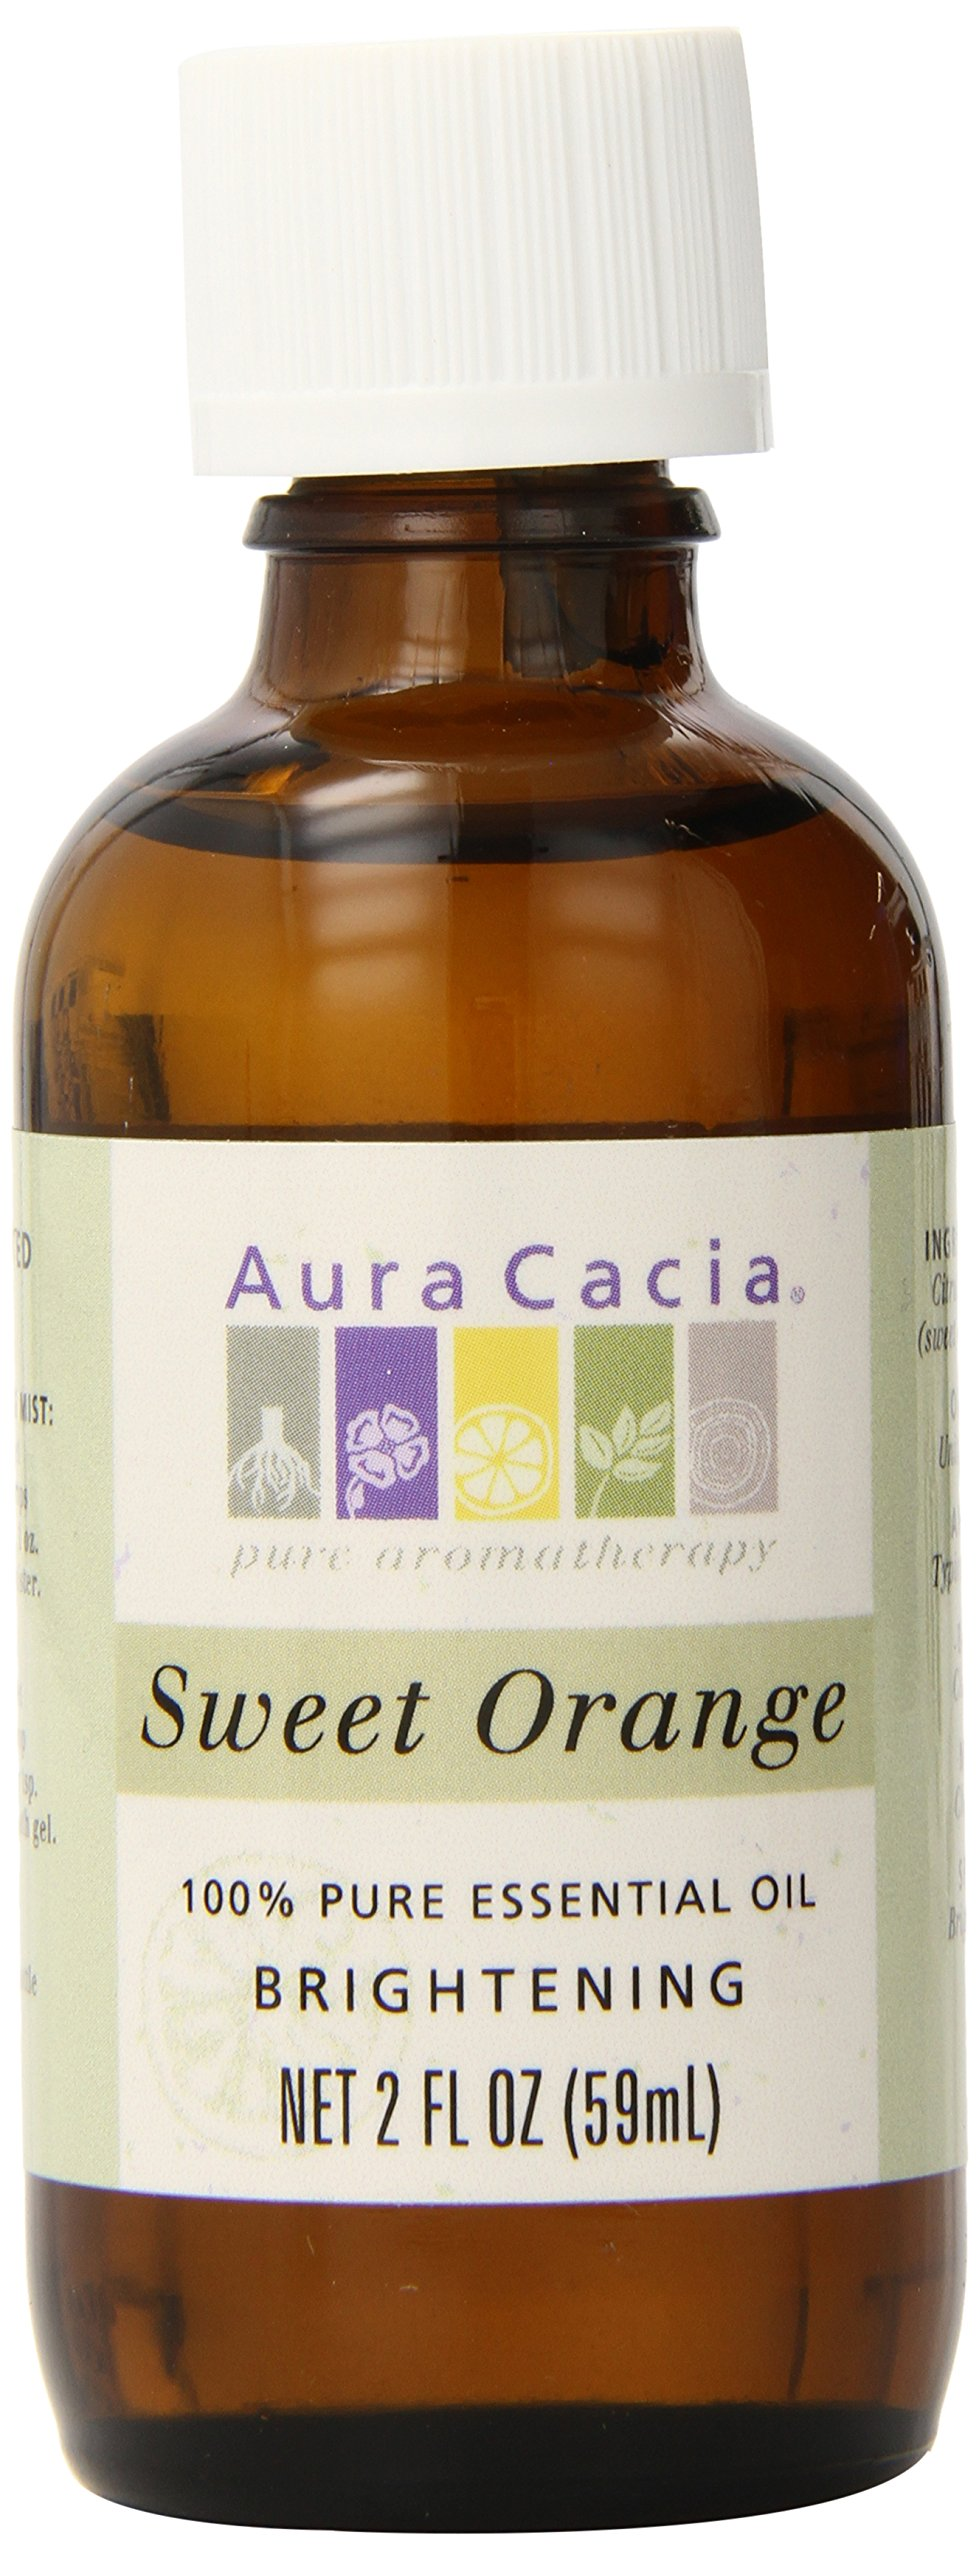 Aura Cacia Essential Oil, Brightening Sweet Orange, 2 fluid ounce